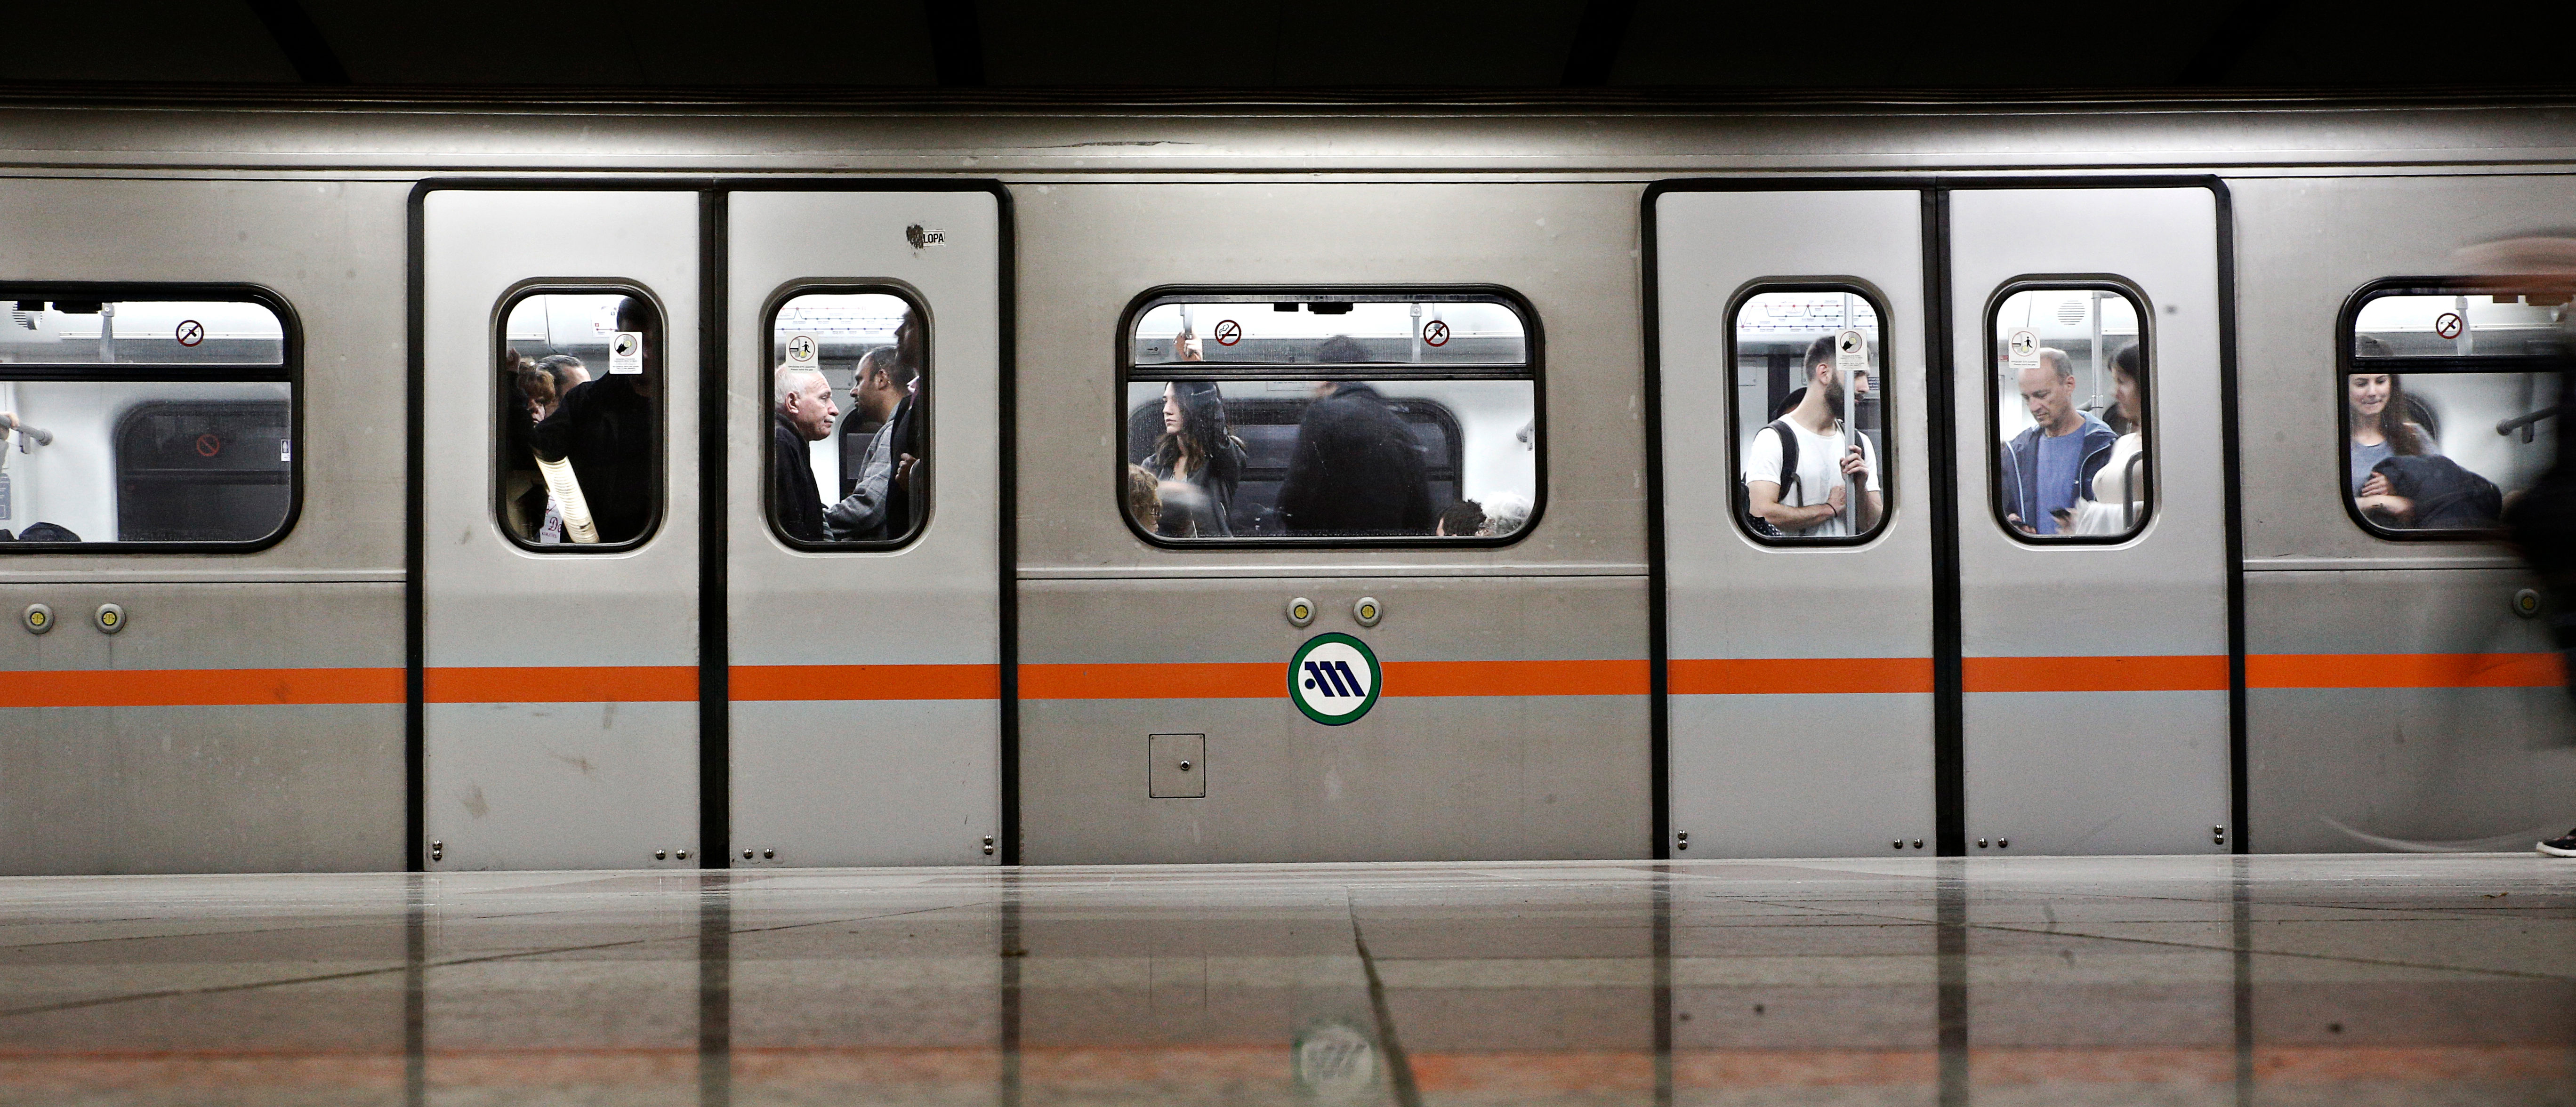 Subway car in Syntagma Metro station in Athens, Greece on Nov. 16, 2017 (Alexandros Michailidis/Shutterstock)